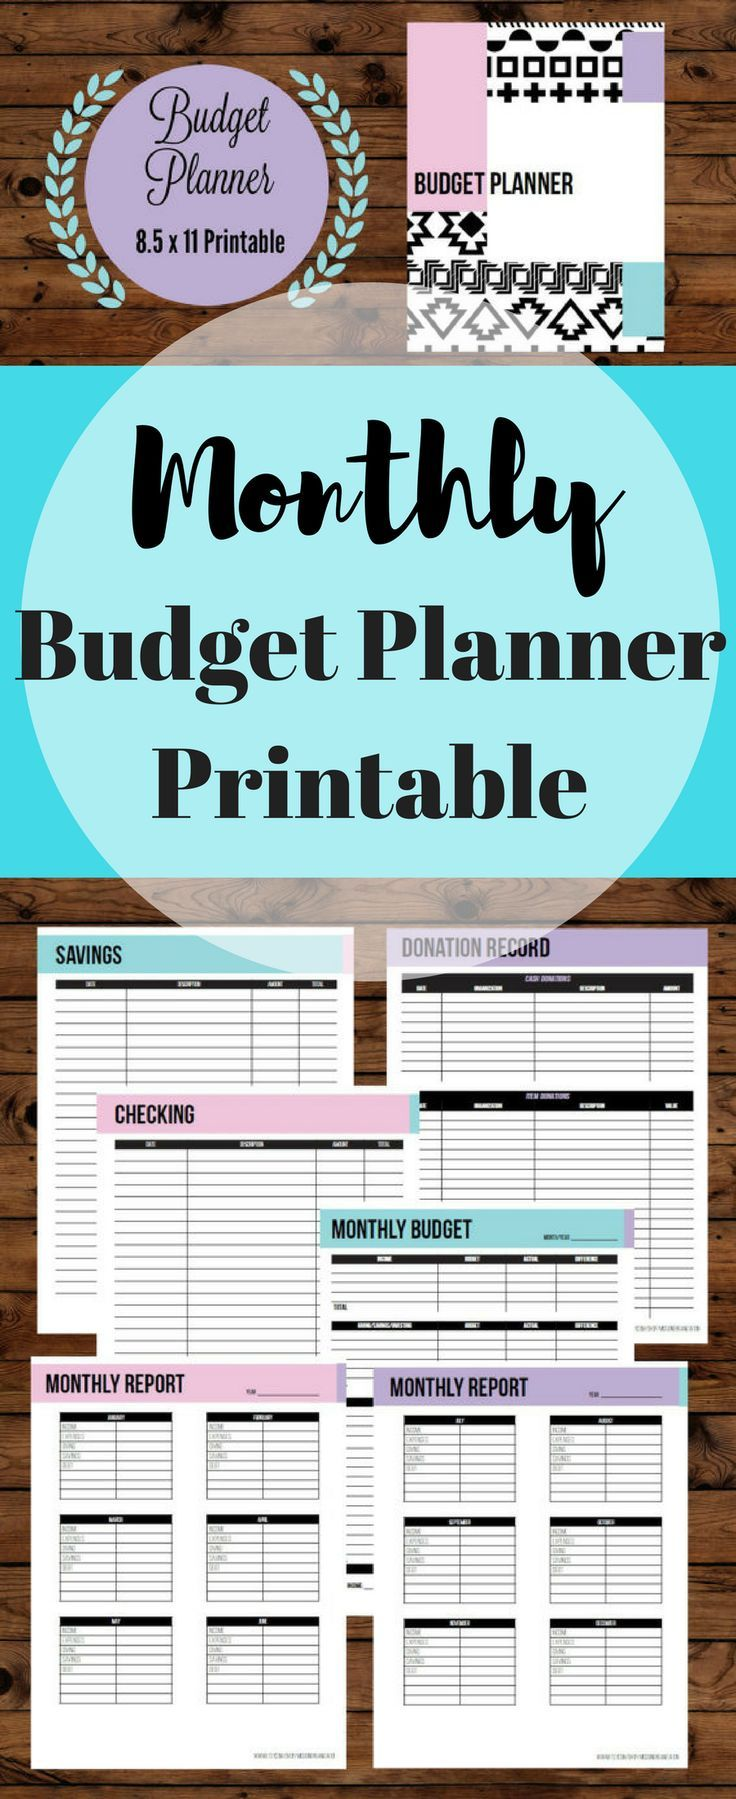 Budgets don't need to be boring! Check out this cute and colorful printable budget planner! 2017 Financial planner for a finance binder and monthly budget planner printable, finance planner, budget printable, 8.5 x 11in #afflink #budget #printable #daveramsey #cute